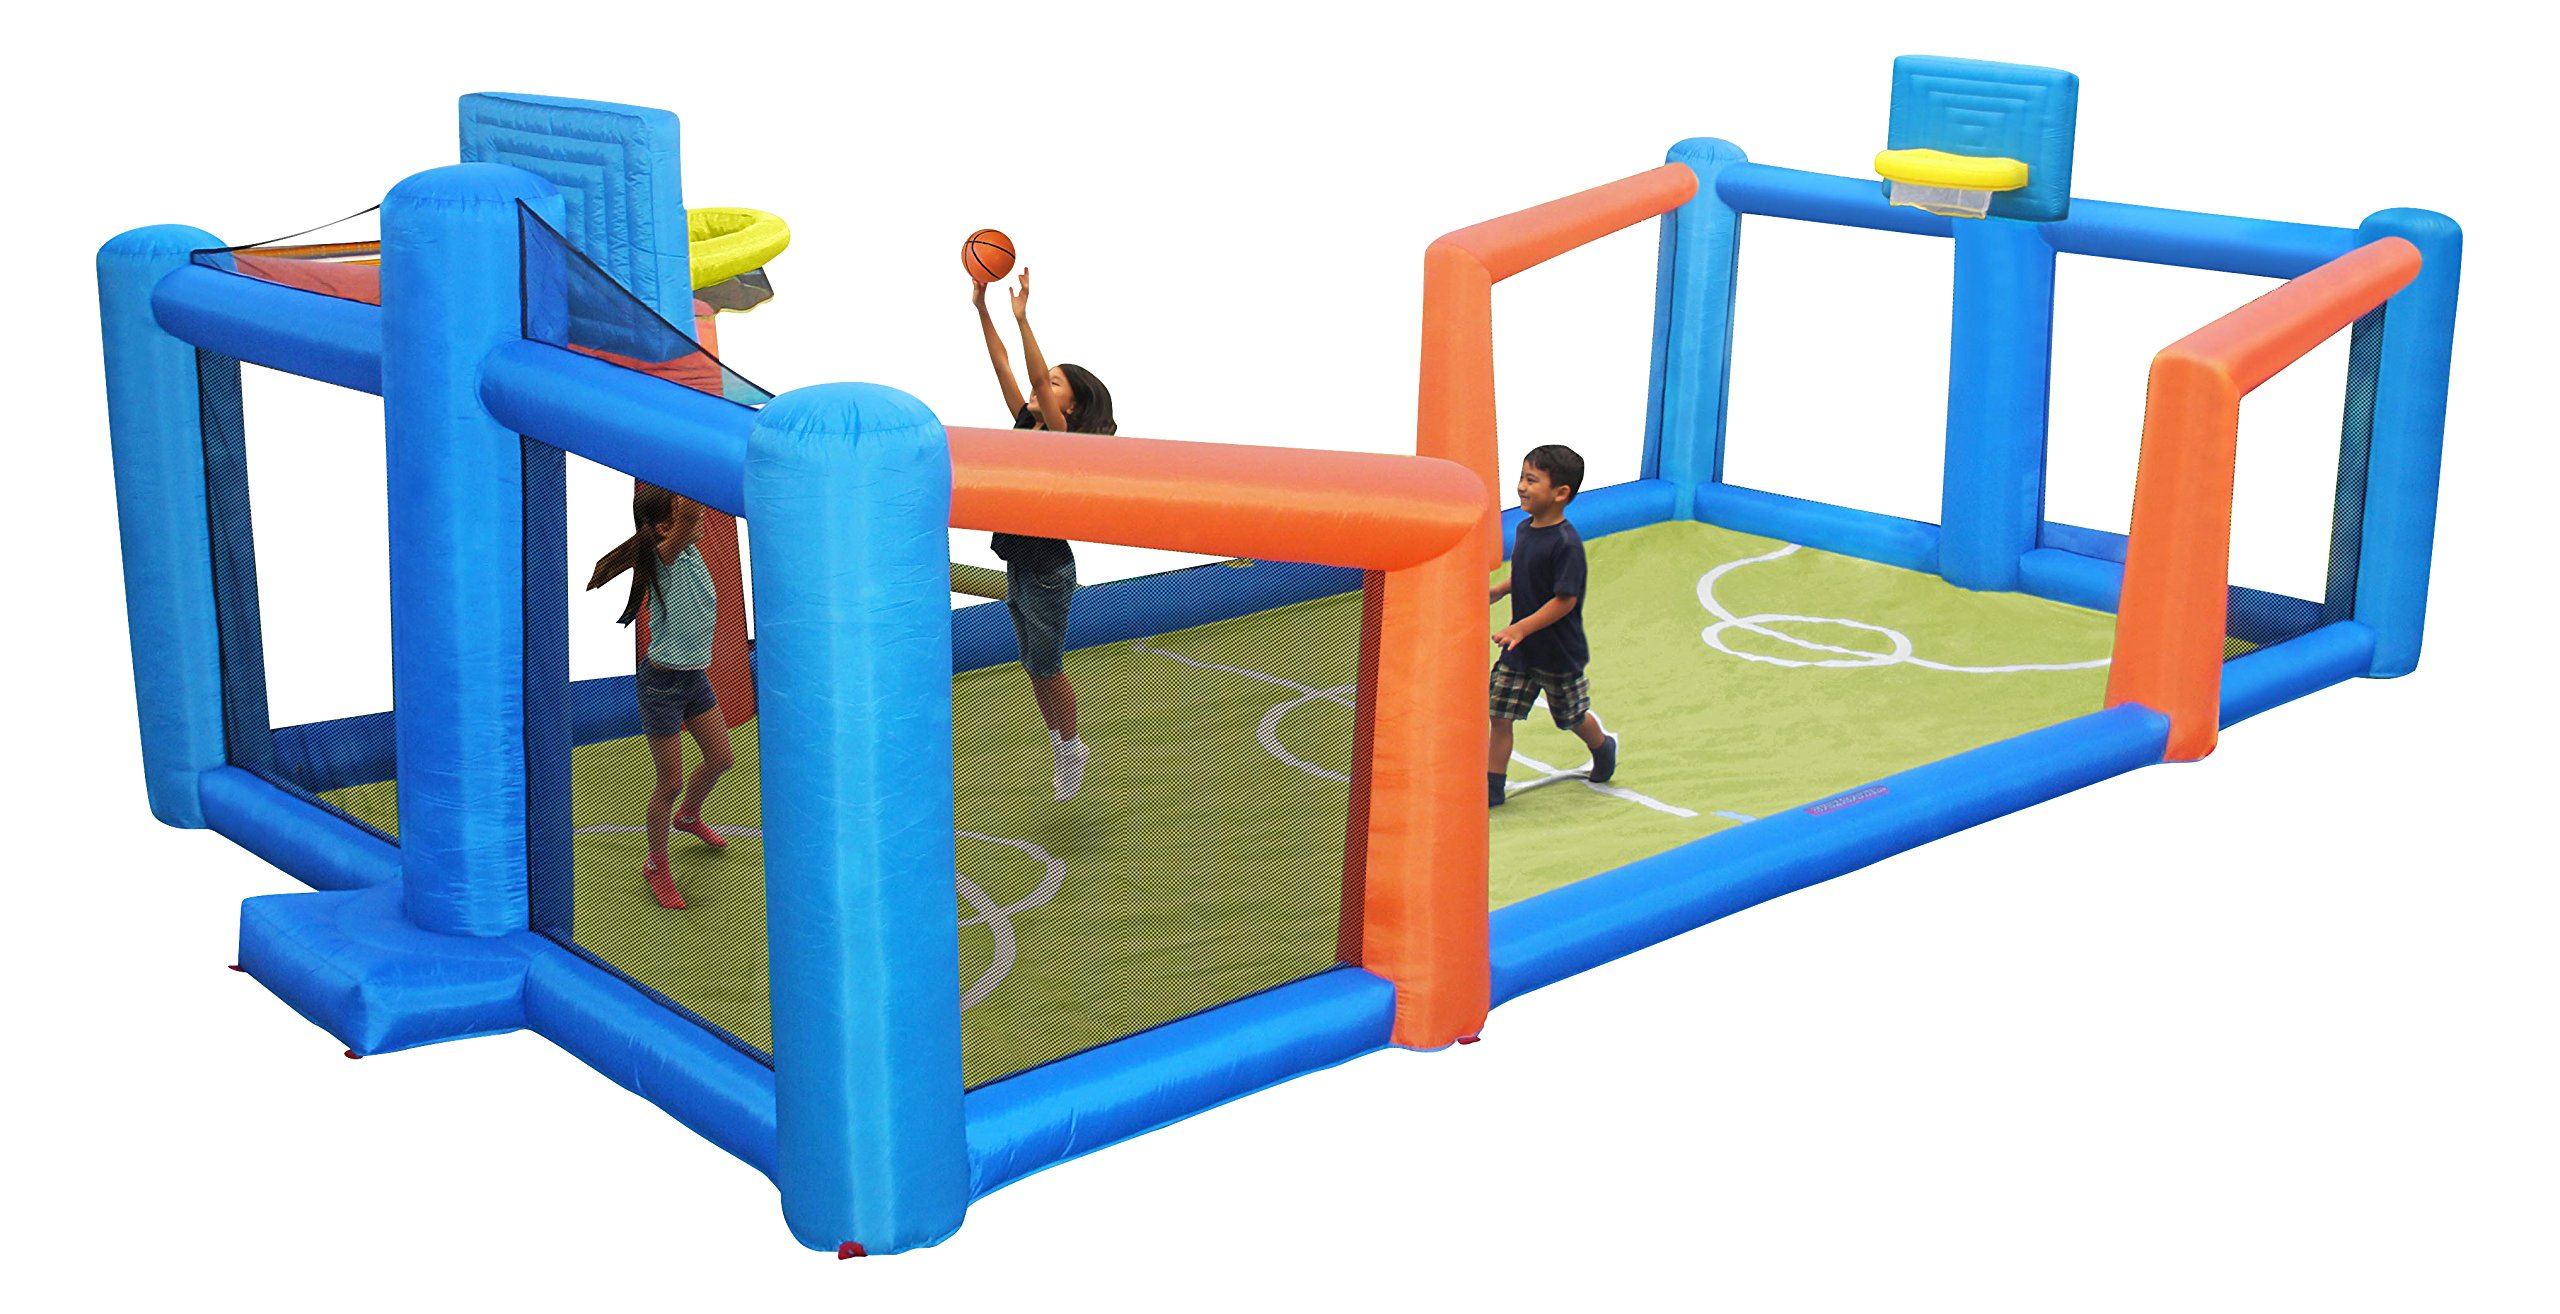 Sportspower Fly Slama Jama Inflatable Basketball Court by Sportspower (Image #1)